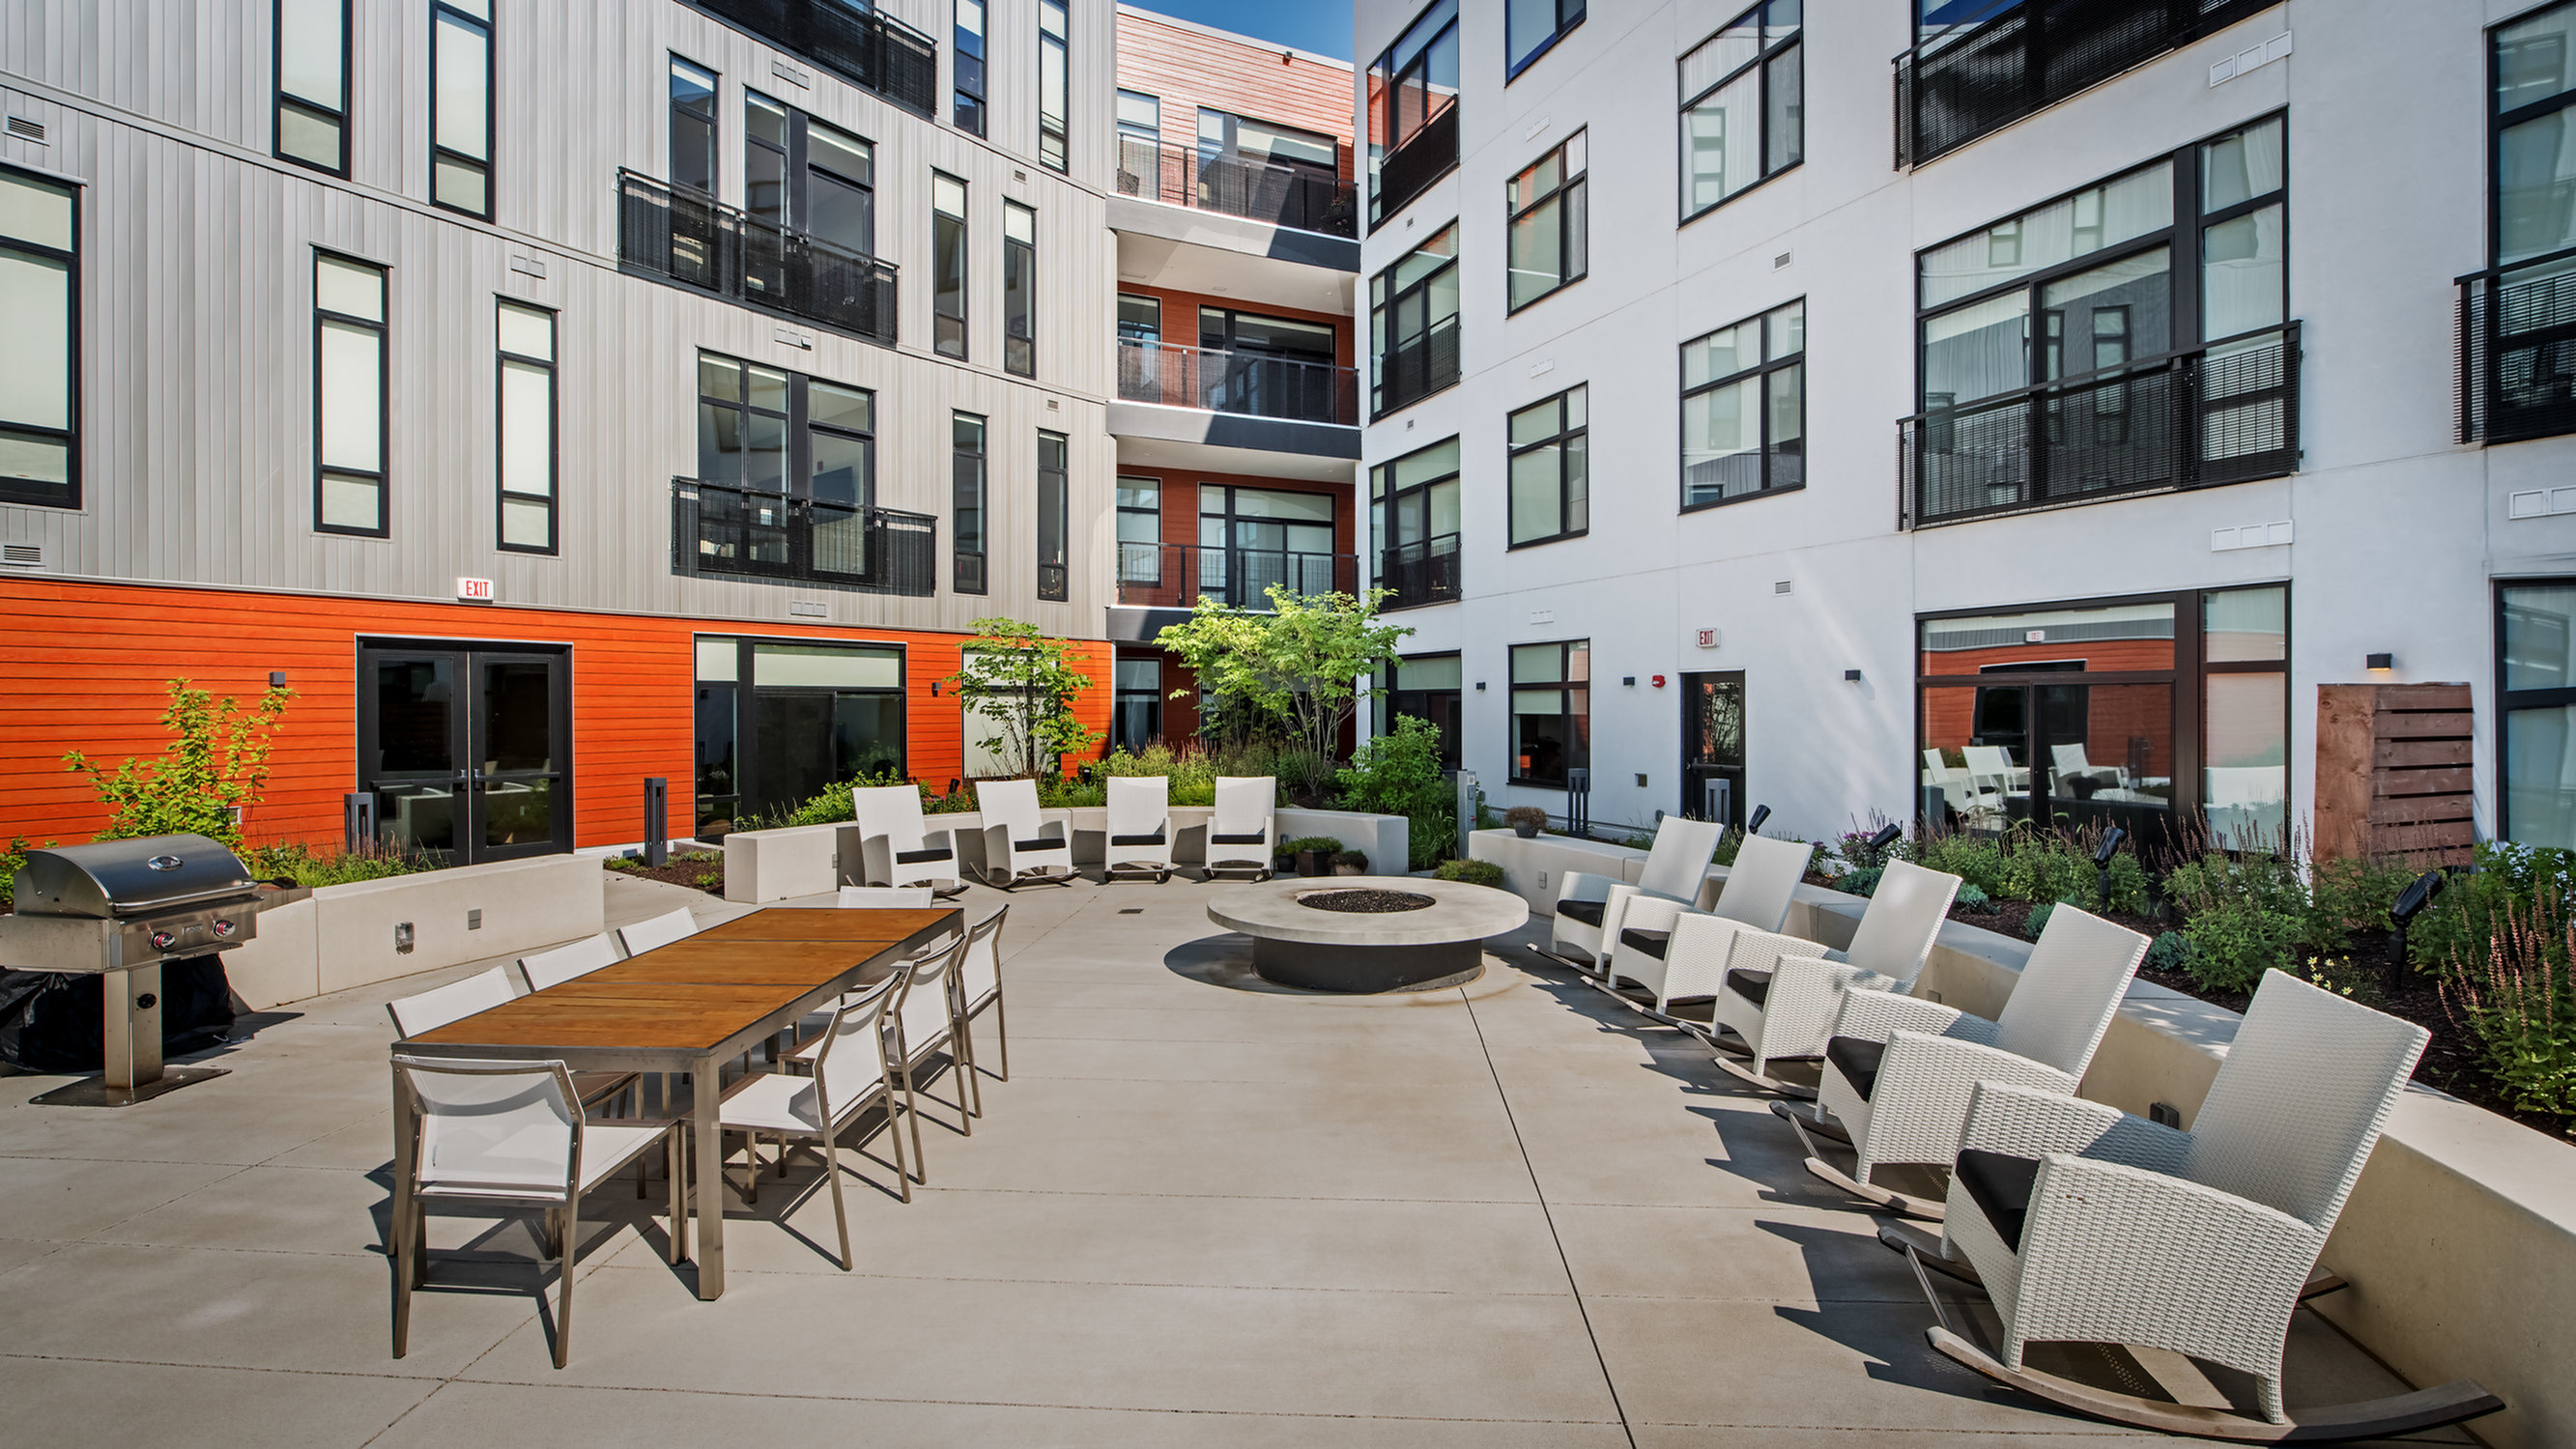 Image of Courtyard and Terraces for Eastside Bond